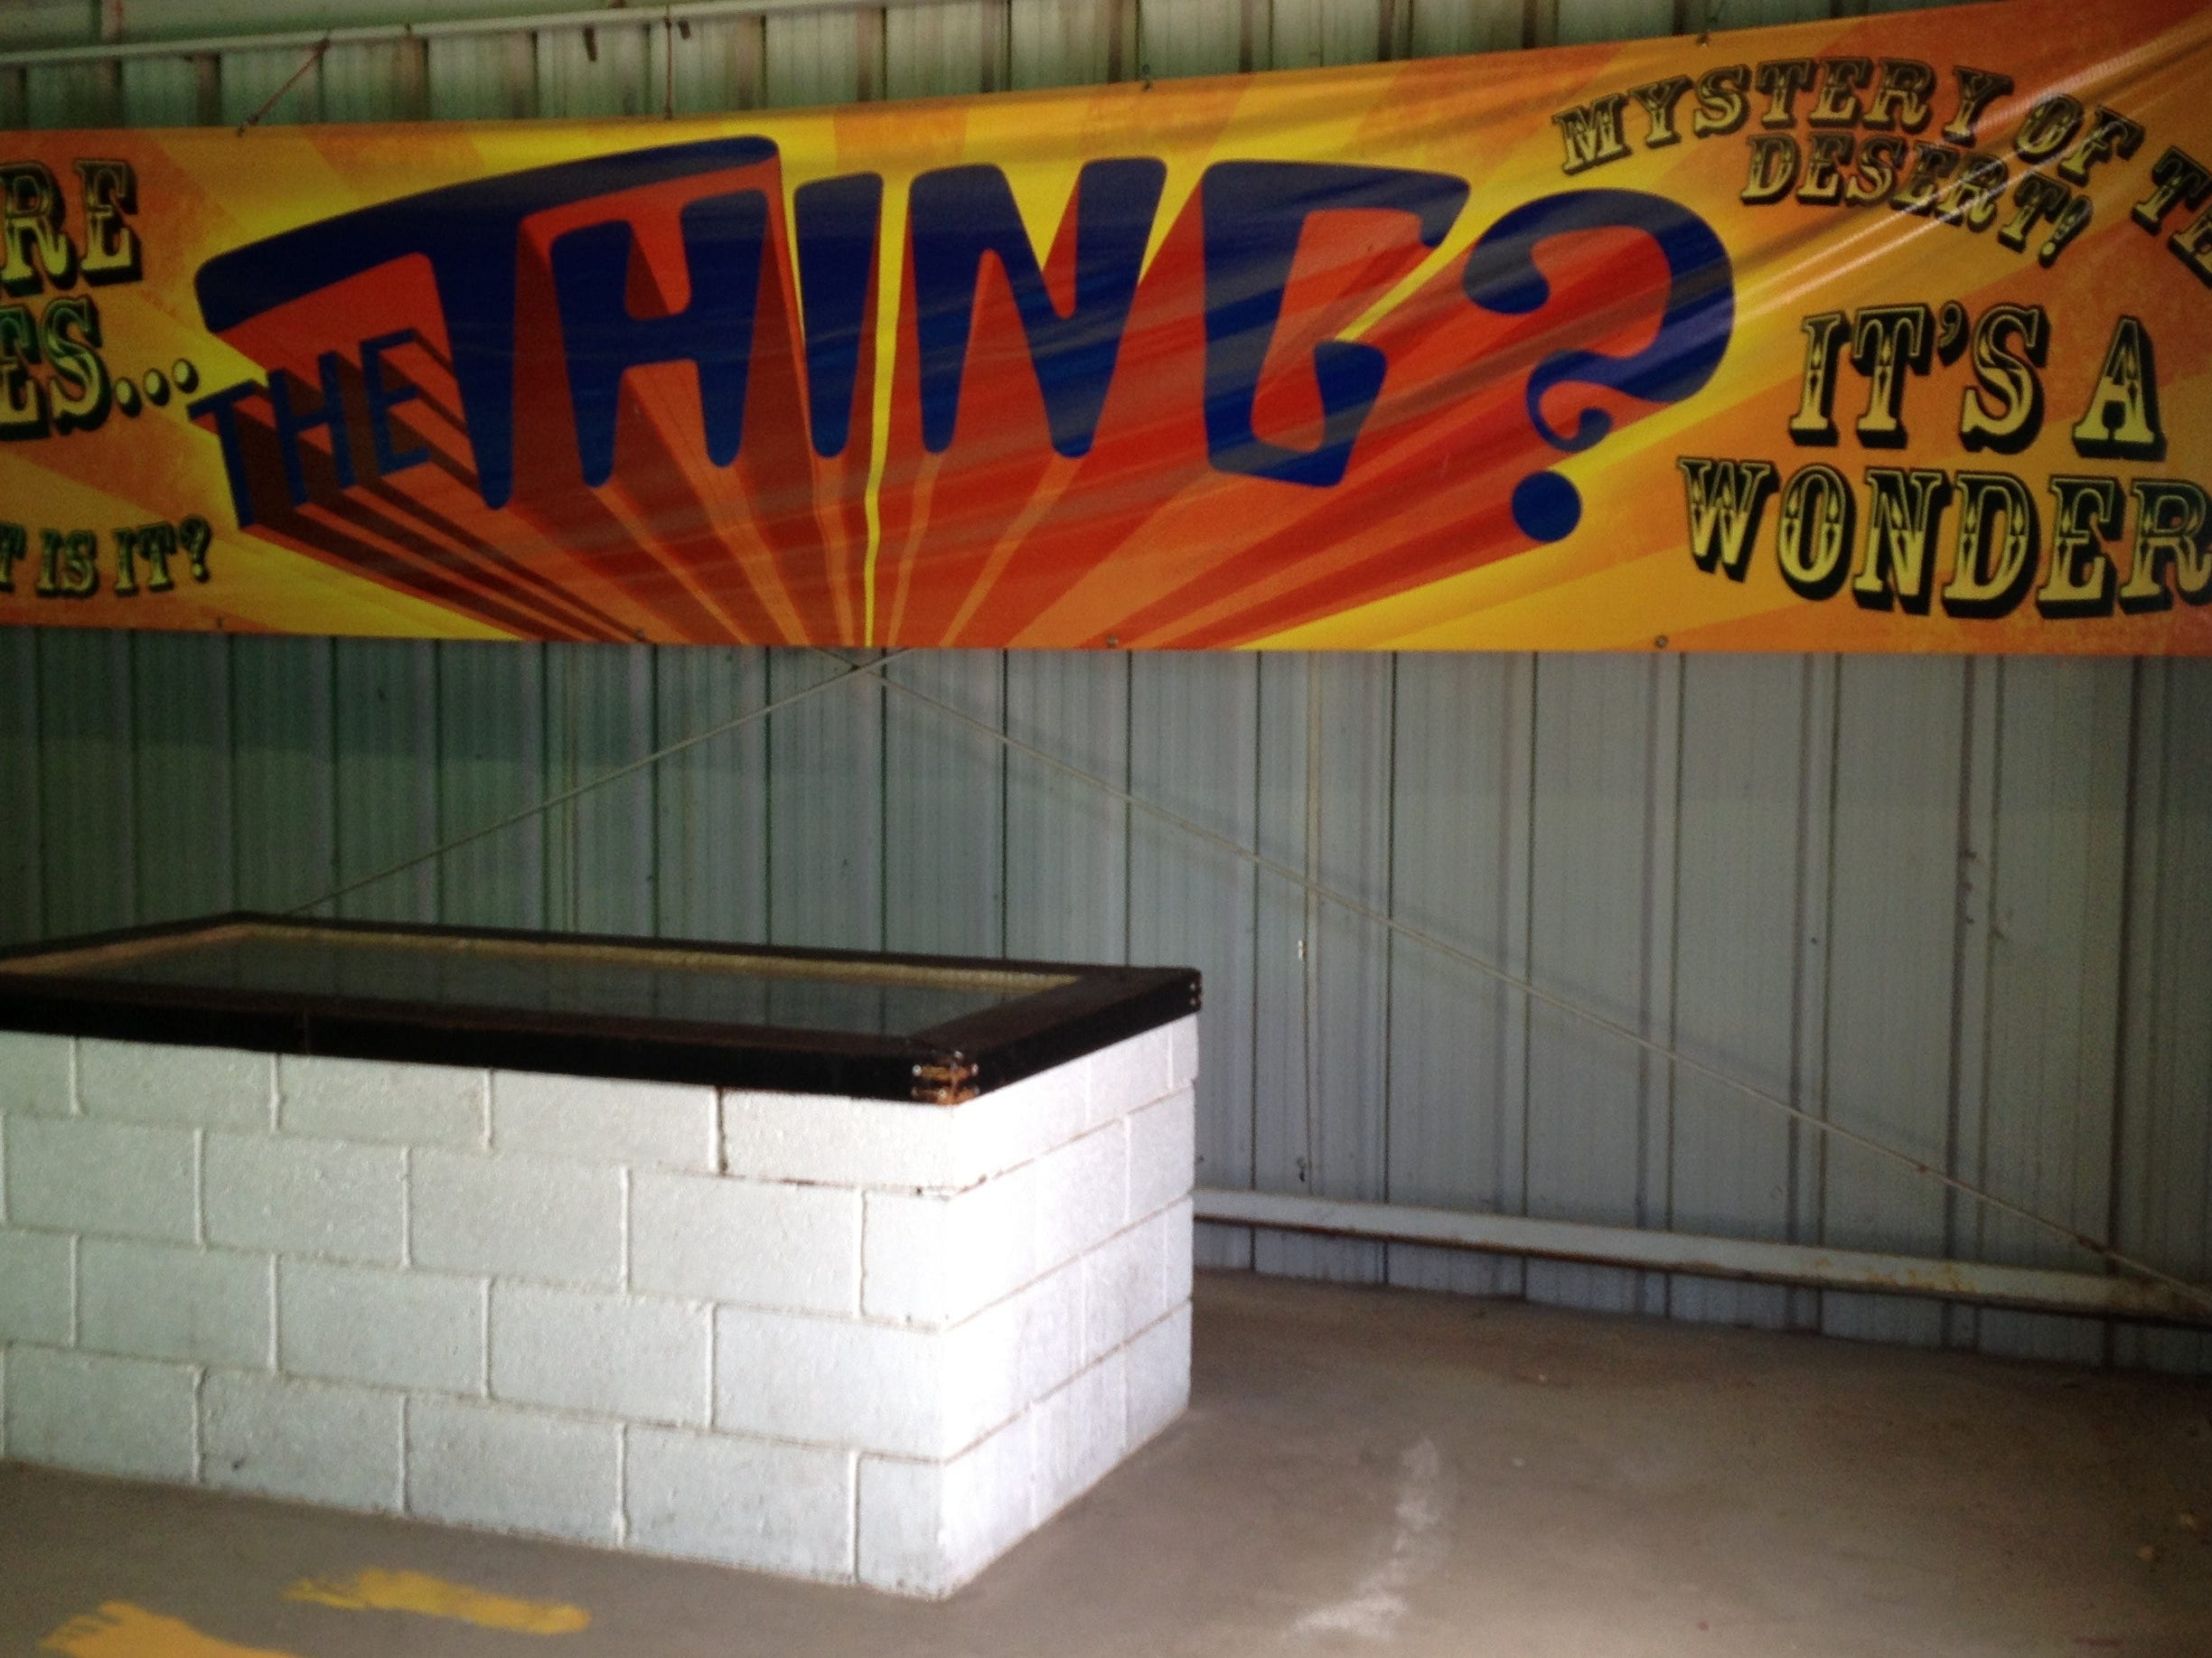 One of Homer Tate's most notable creations, The Thing, has had a longtime home at the Bowlin Travel Center east of Benson. In 2018, The Thing Museum opened and it now rests in dimly lit cavern instead of a cement-block coffin.